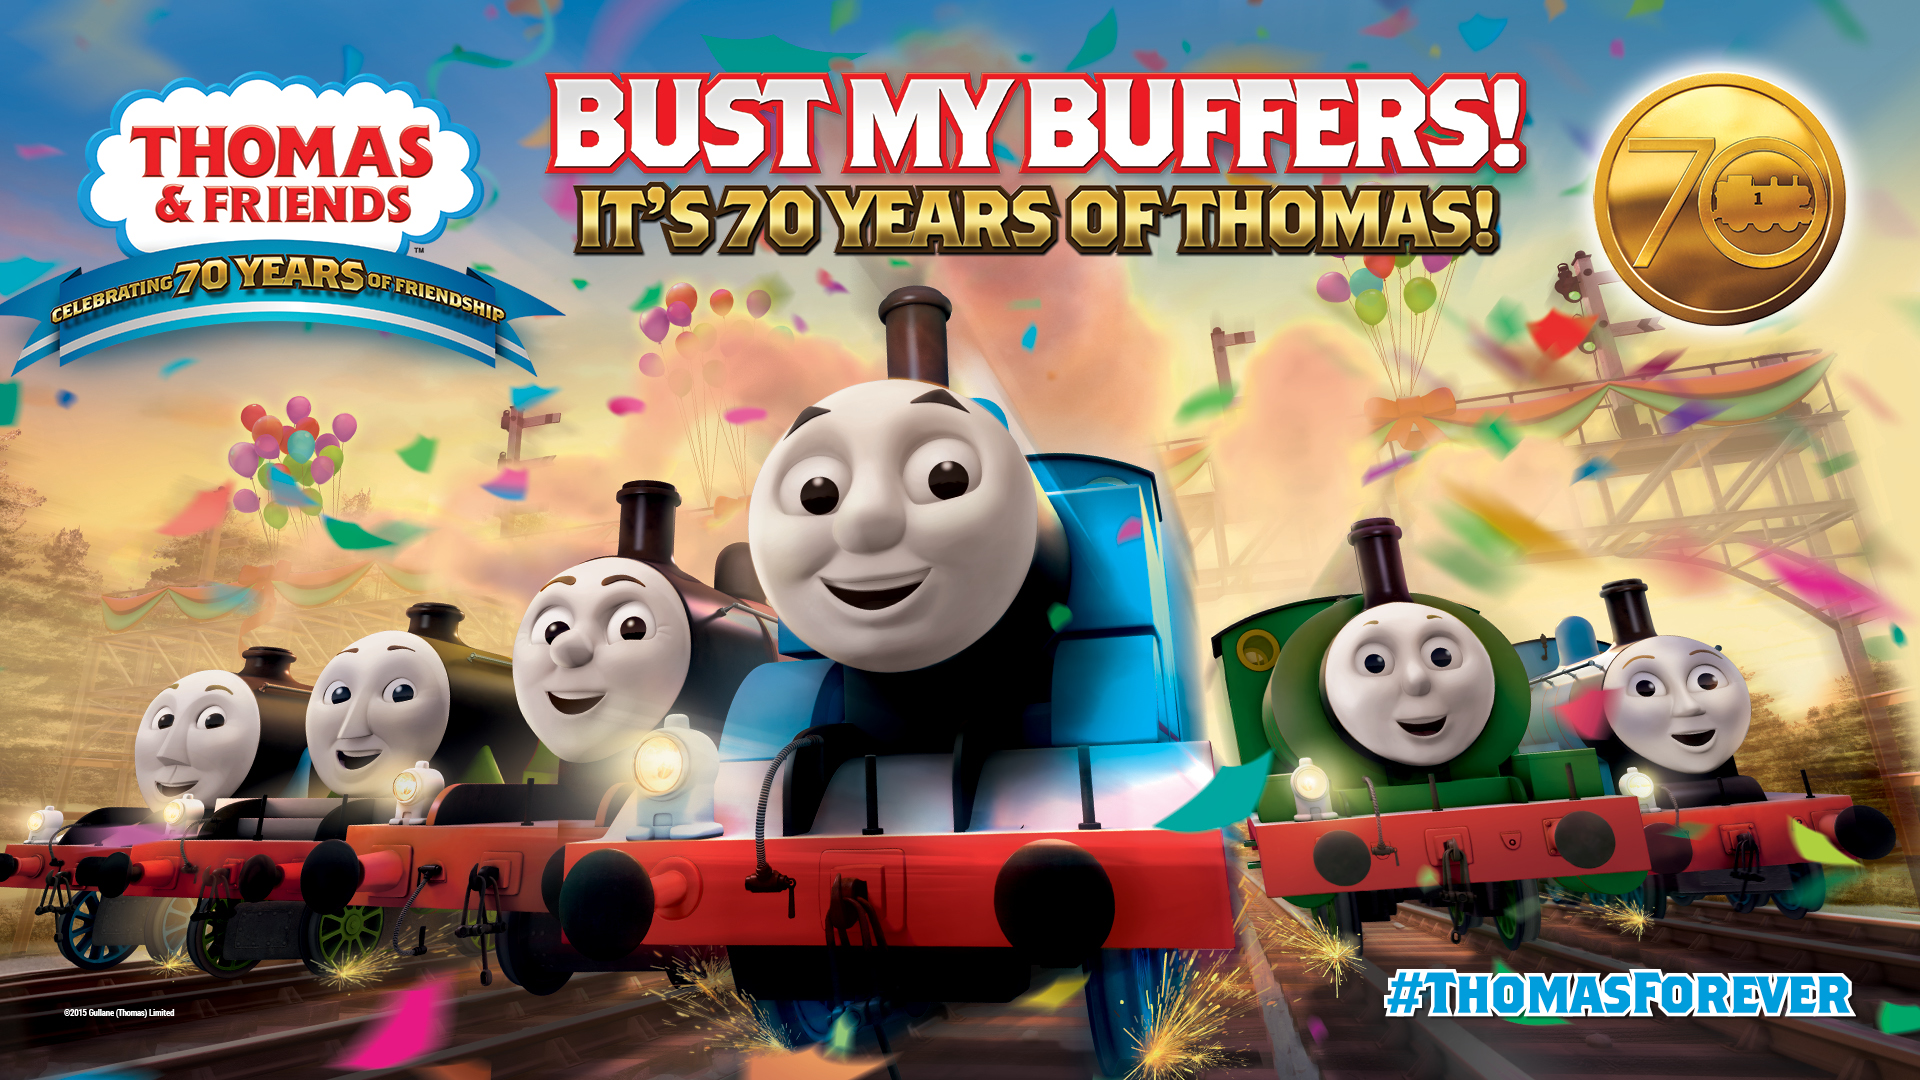 JOIN THOMAS & FRIENDS™ FOR THE ULTIMATE 70TH BIRTHDAY CELEBRATION